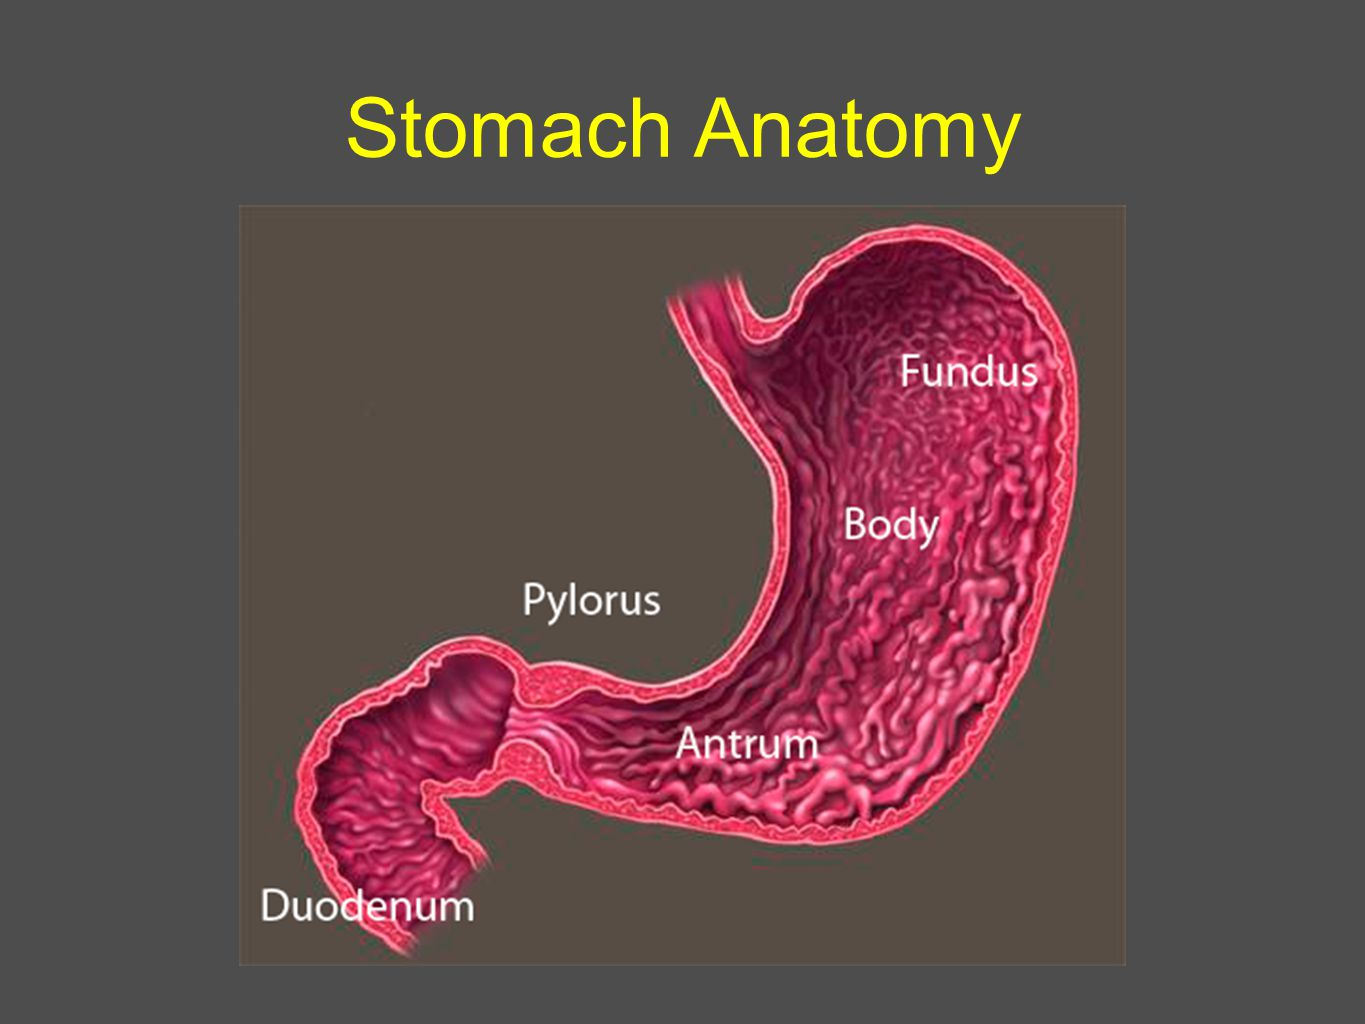 Stomach Anatomy